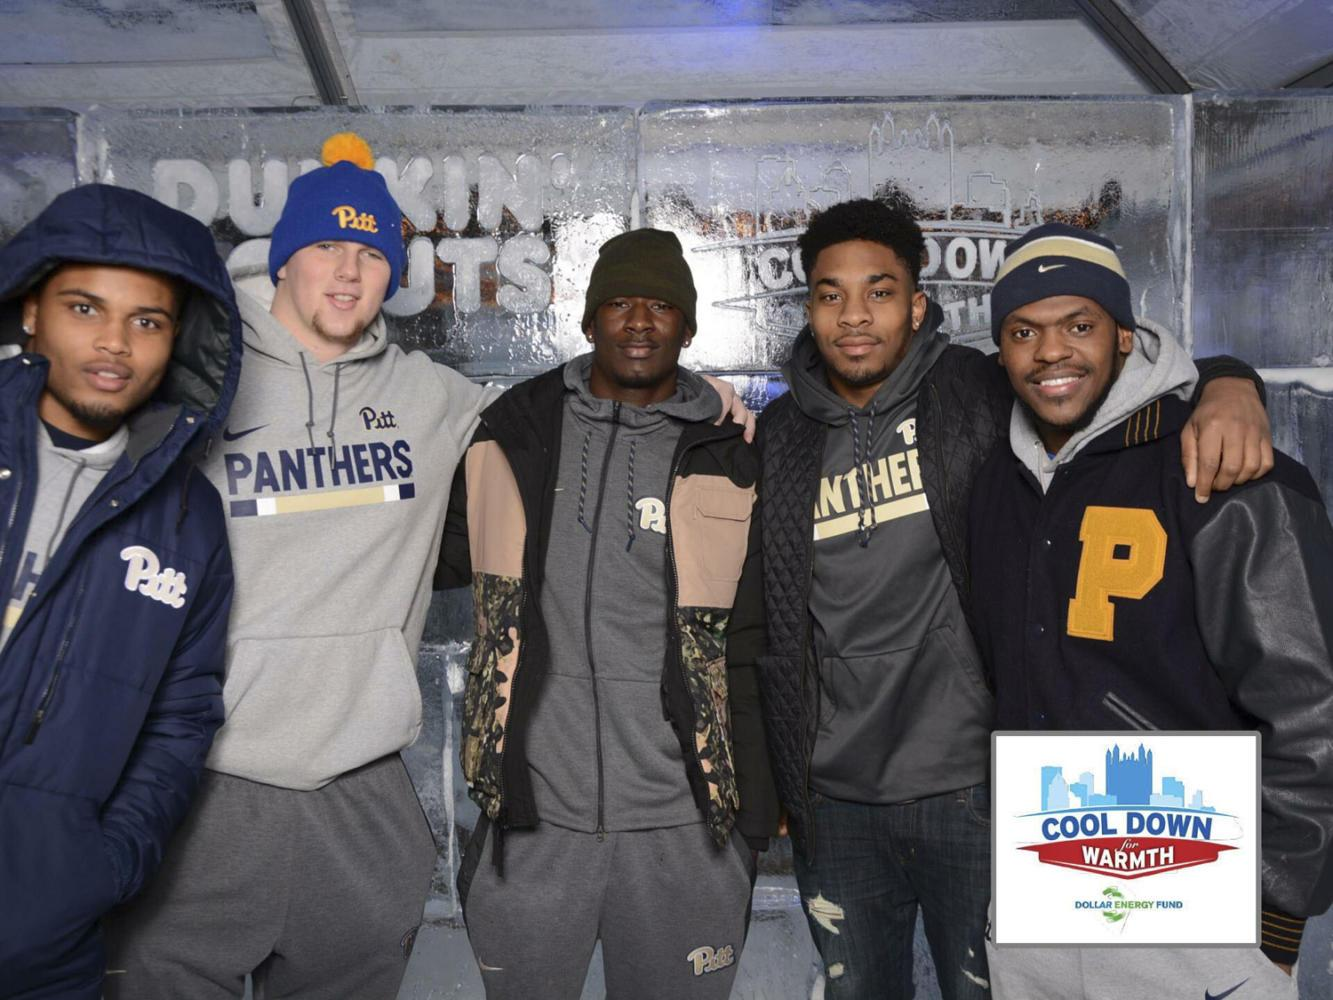 Shocky Jacques-Louis (middle) stands alongside fellow Pitt football recruits and Celeste Welsh, the Pitt Athletics media relations coordinator, at the Cool  Down for Warmth fundraiser Jan. 25. (Photo courtesy of Jake Kradel)